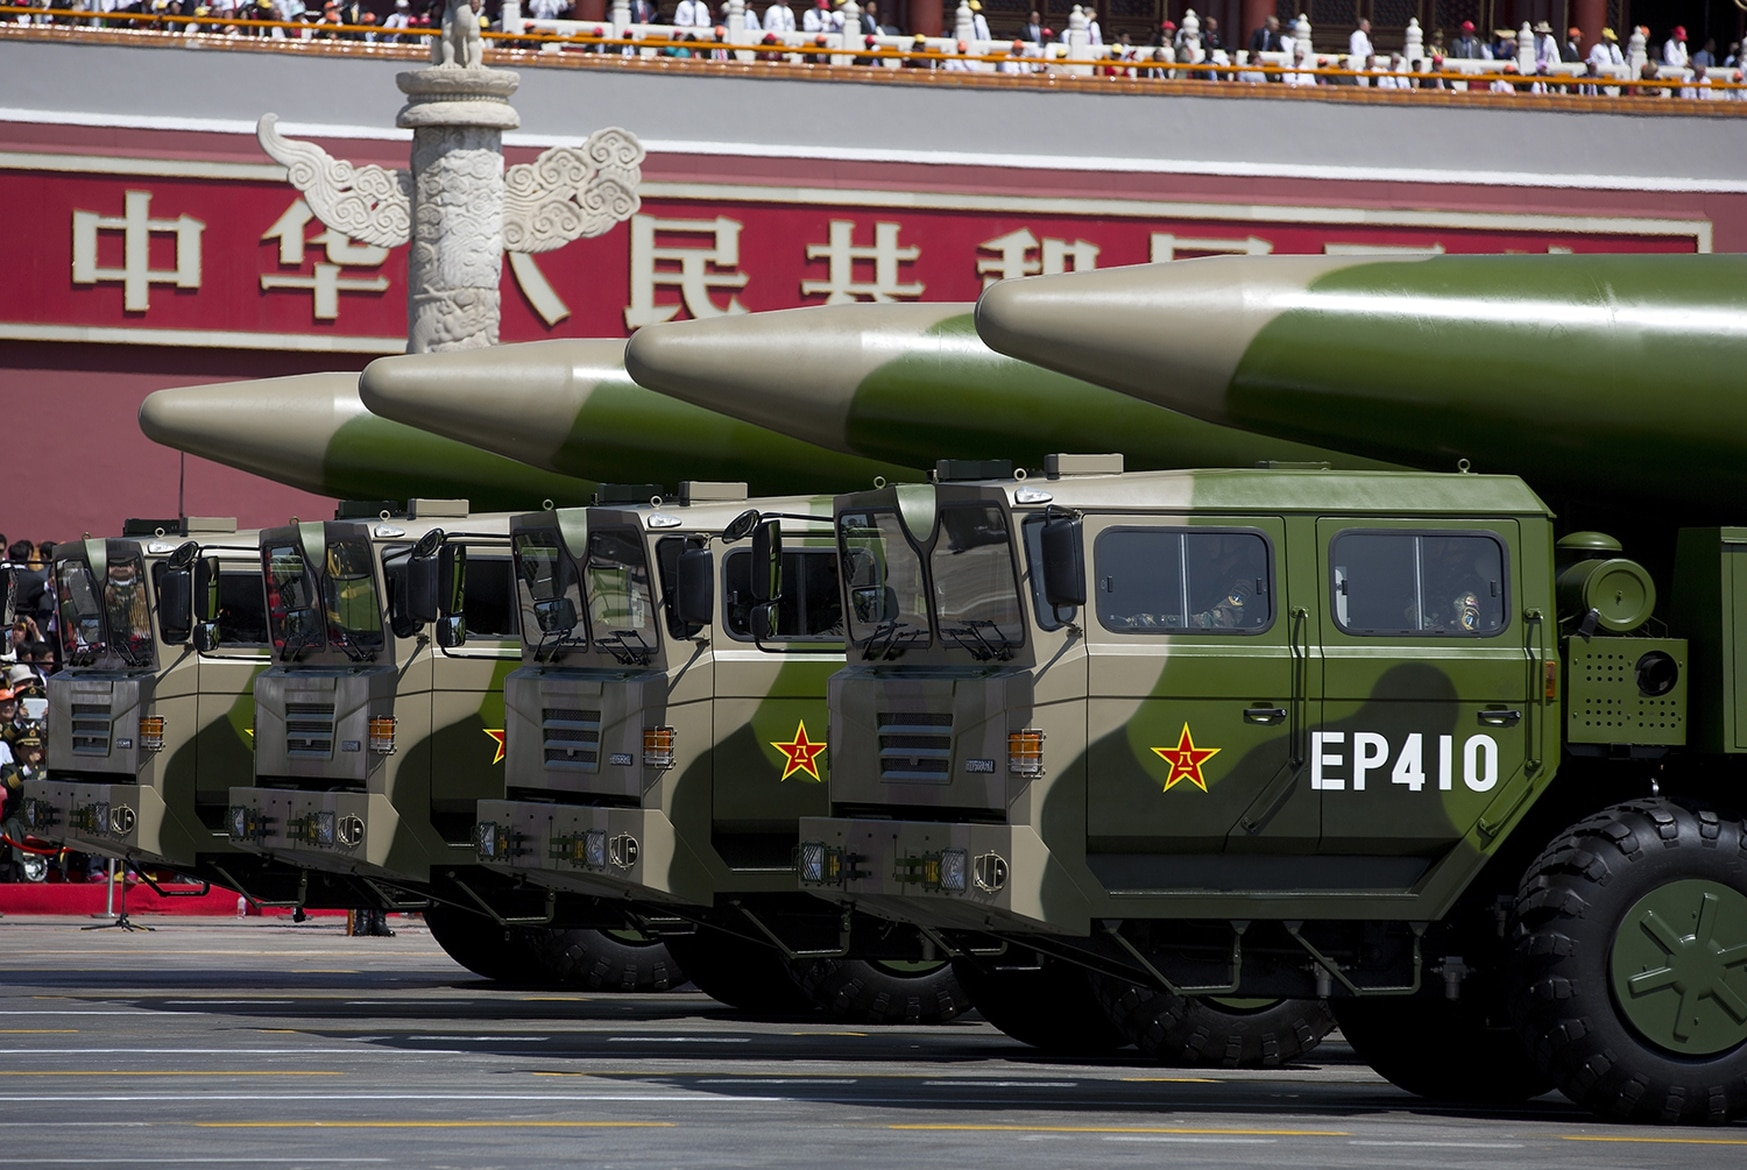 Chinese military vehicles carry DF-26 ballistic missiles during a parade on Sept. 3, 2015, in Beijing. (Andy Wong/Pool via Getty Images)